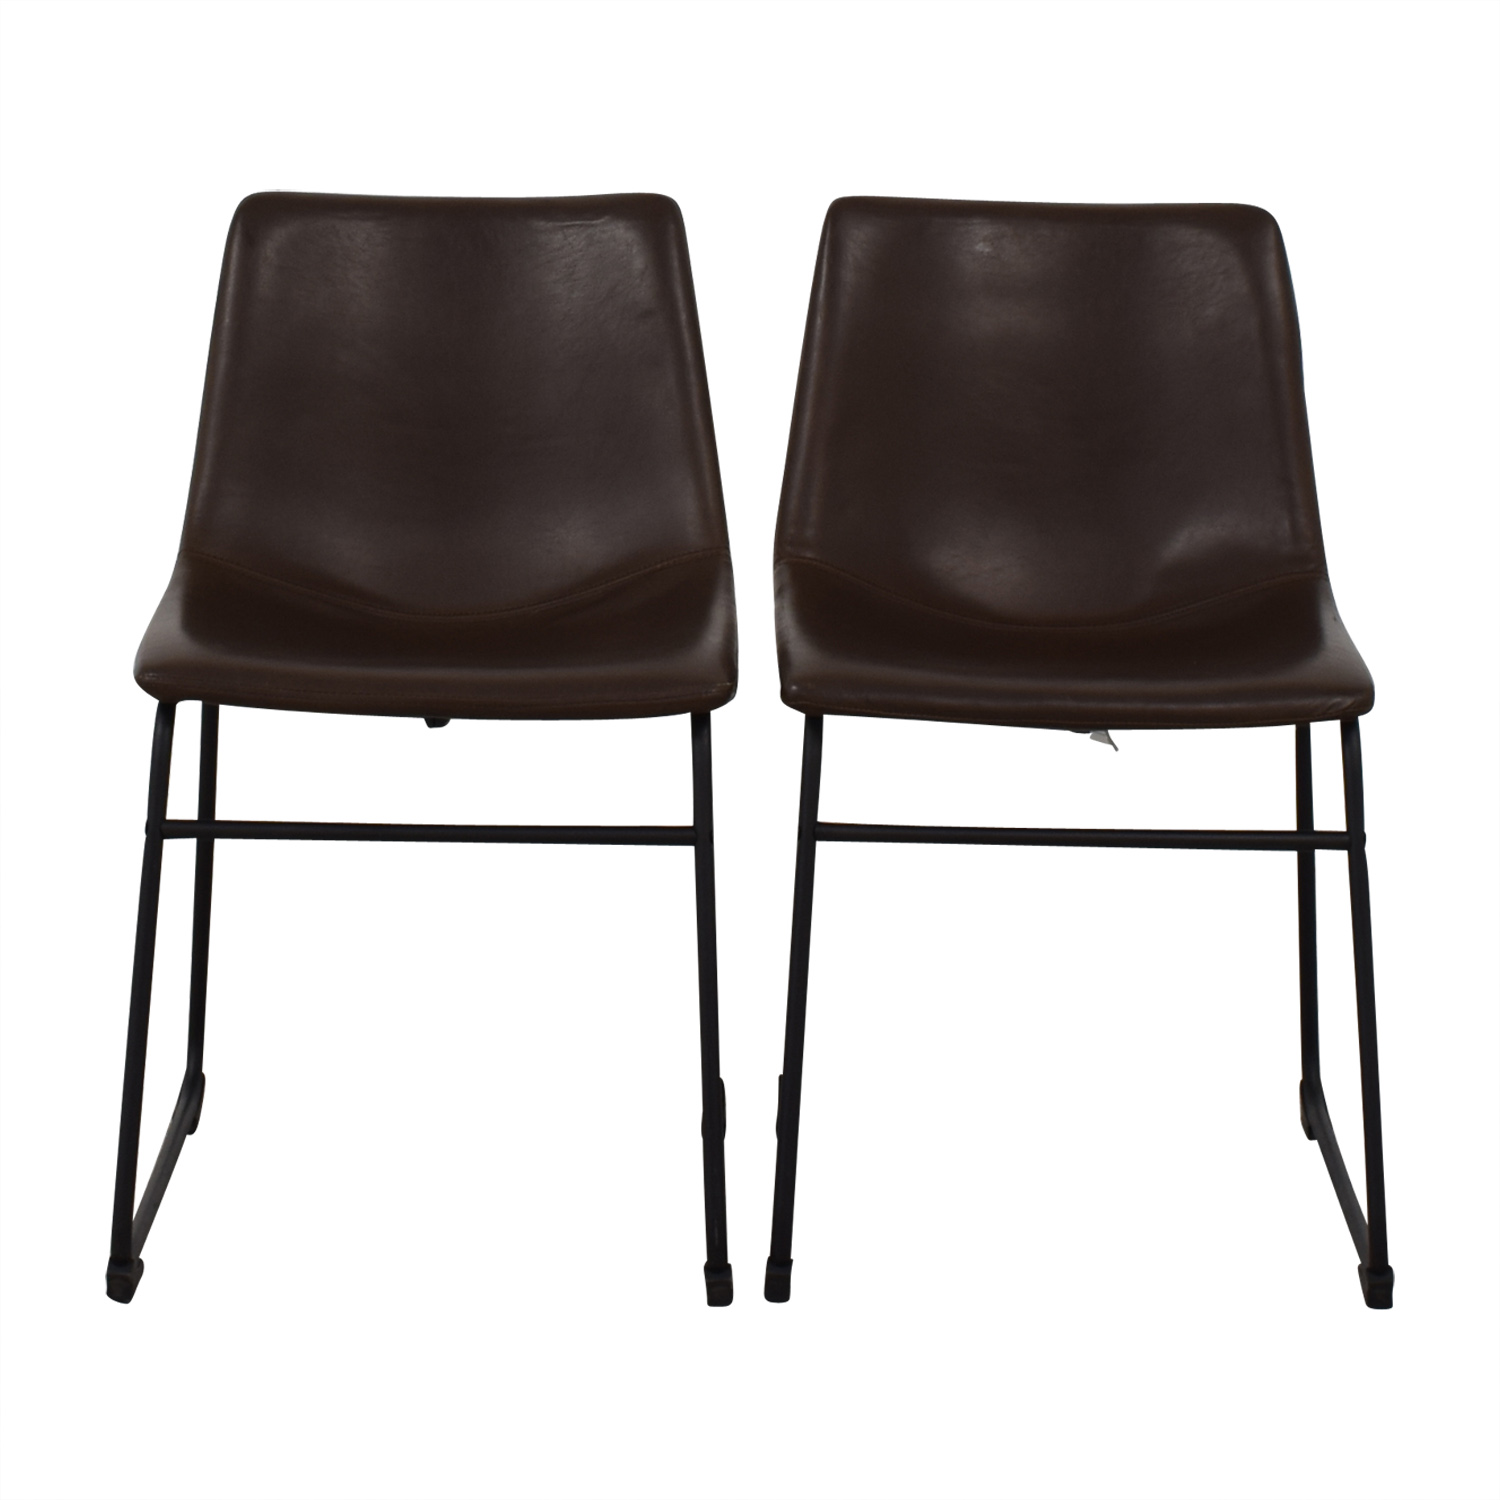 Walker Edison Industrial Faux Leather Dining Chairs sale